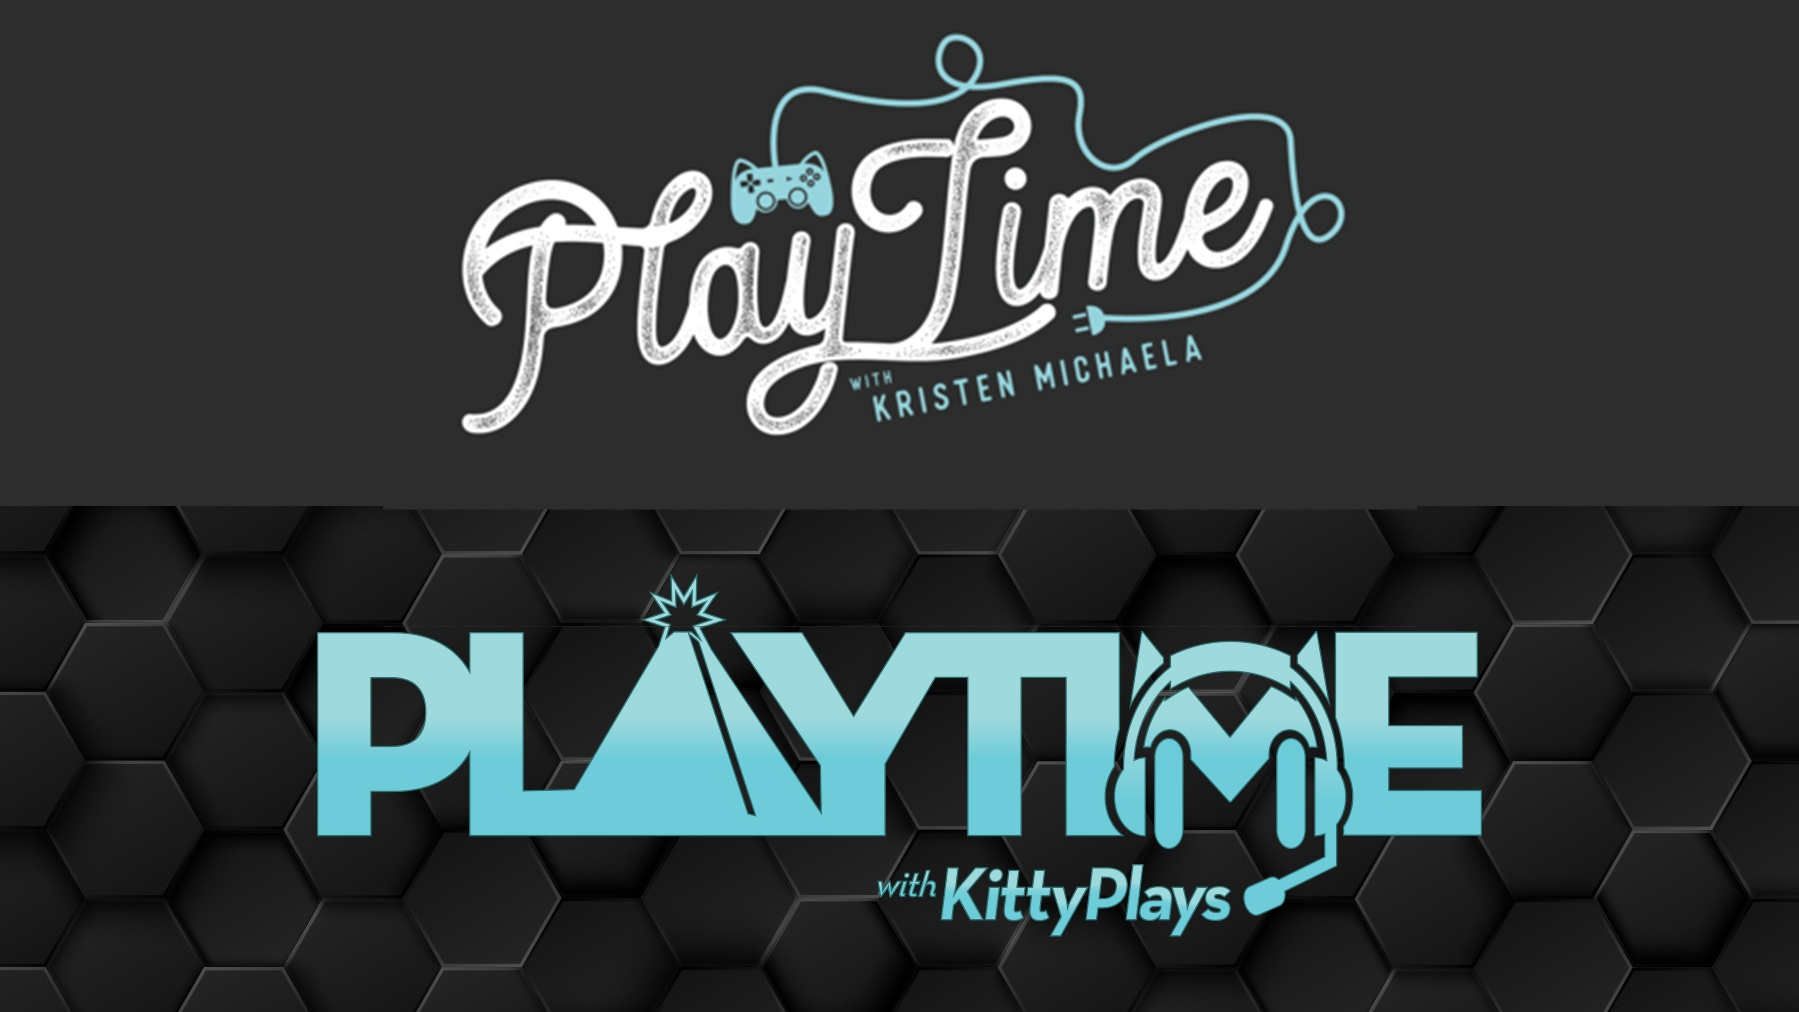 Playtime with KittyPlays Logo: 1st version and Final